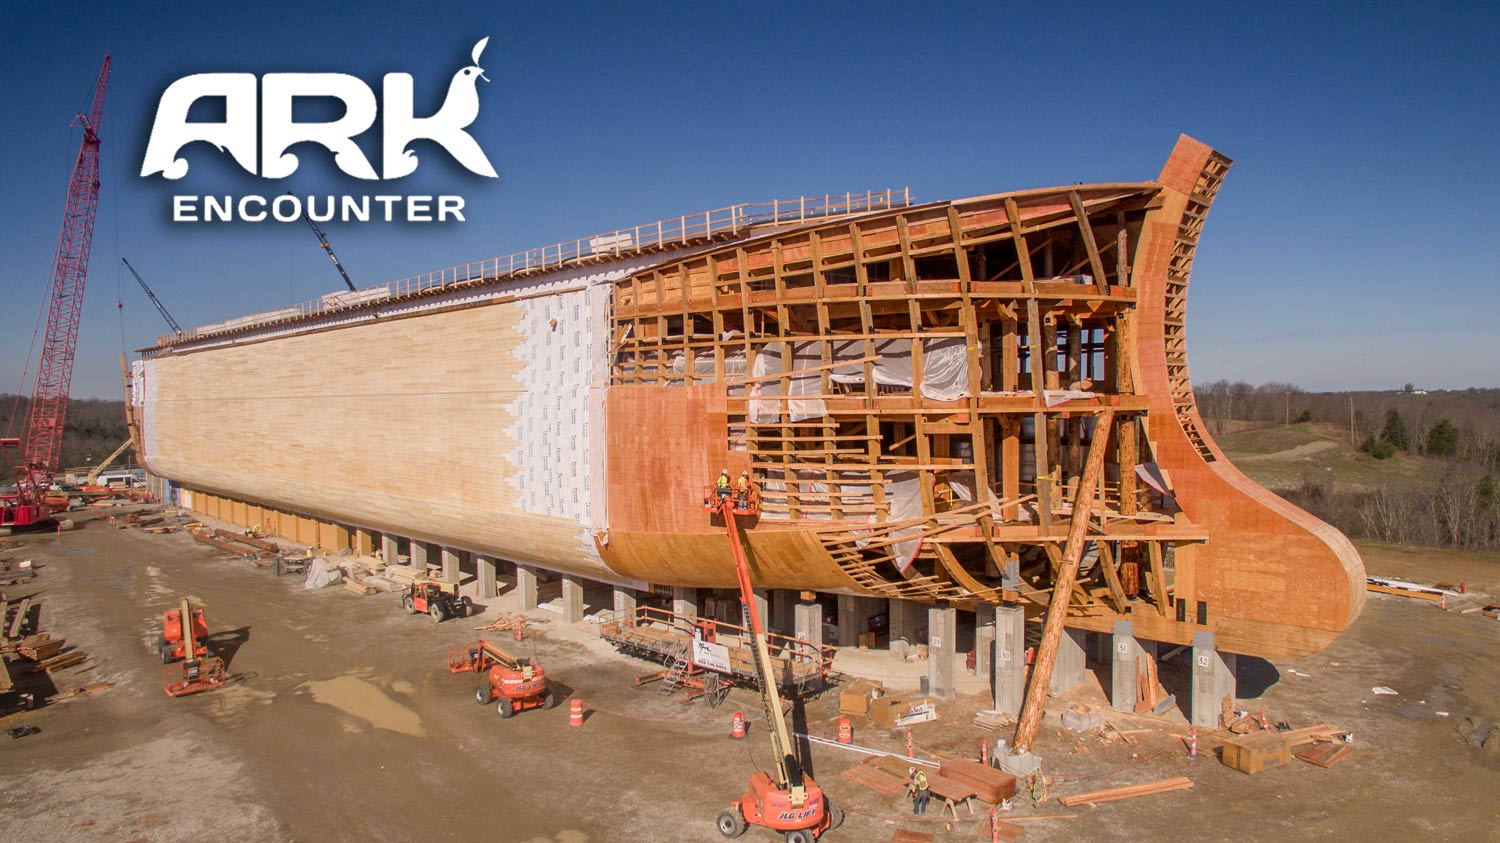 The Ark Encounter